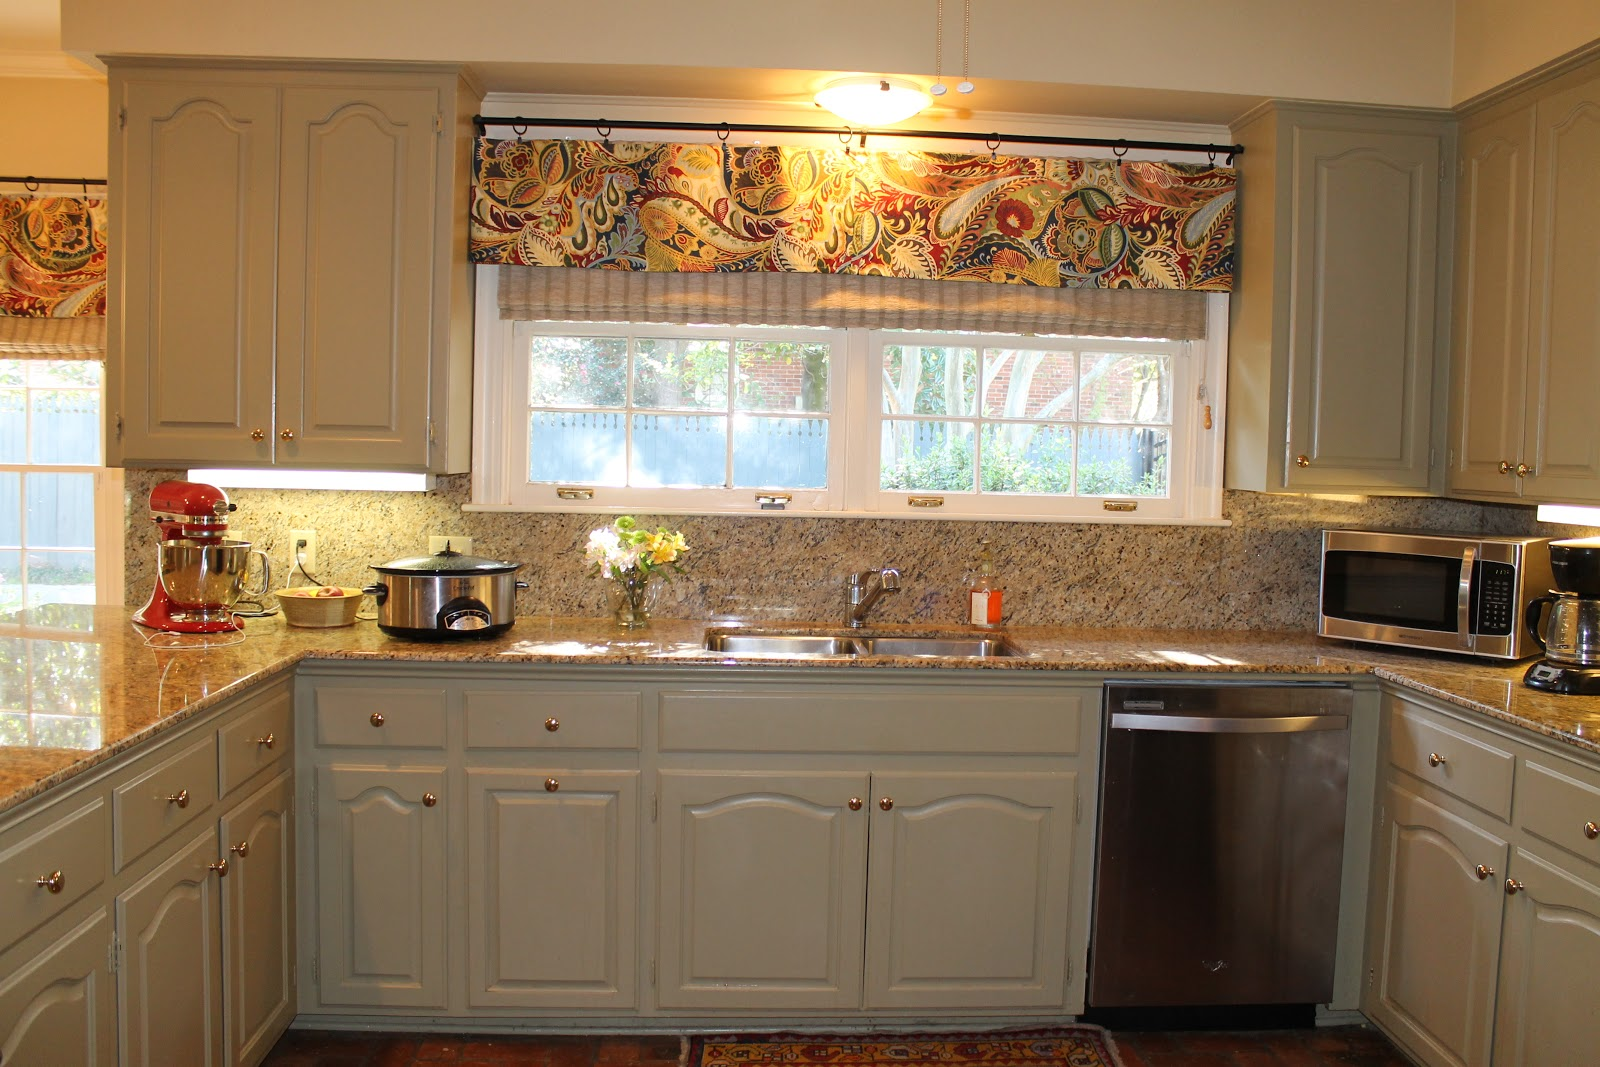 kitchen-curtains-ideas-diy